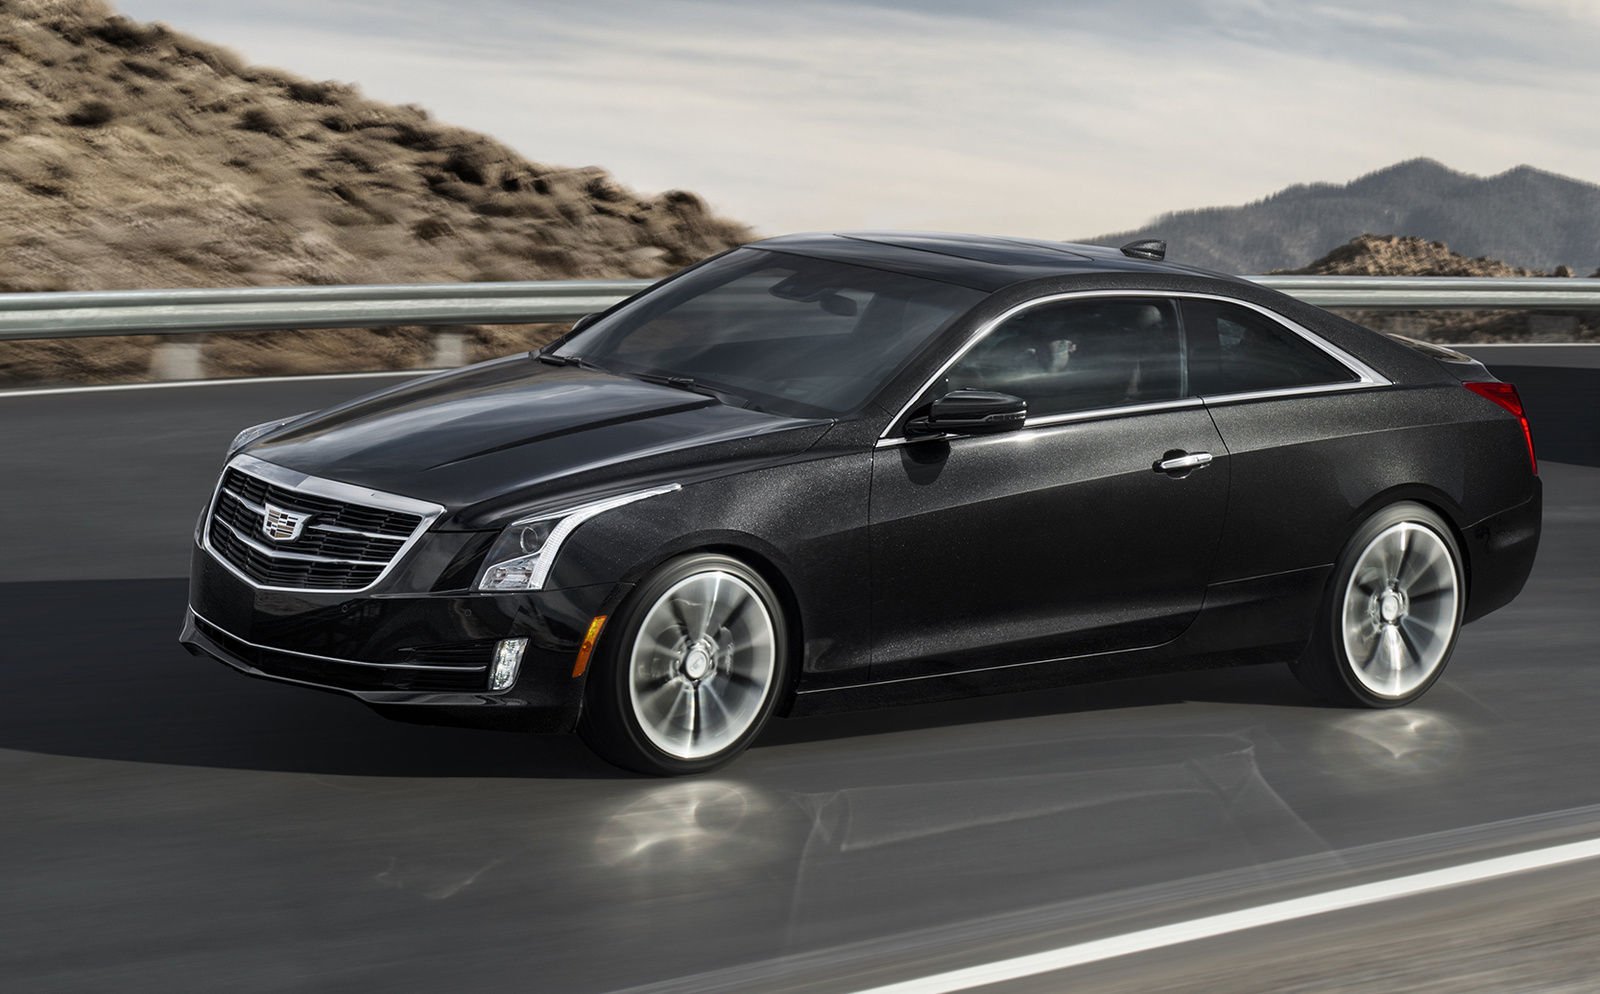 Cadillac Ats Sedan - Cadillac Ats Coupe For Sale In Your Area